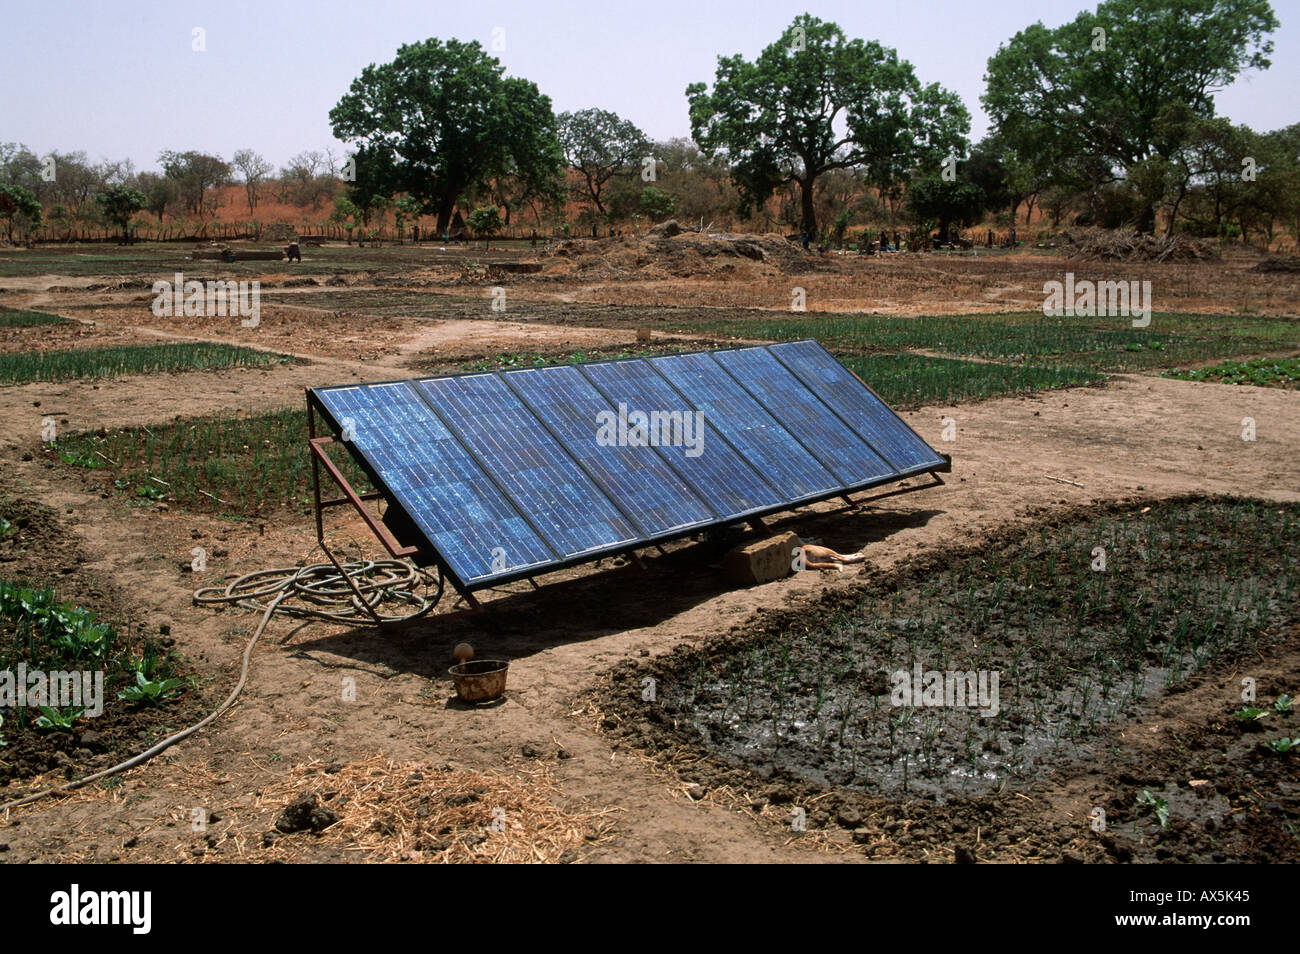 Tankular, The Gambia. Solar panels at an agricultural project funded by international charity aid. Stock Photo